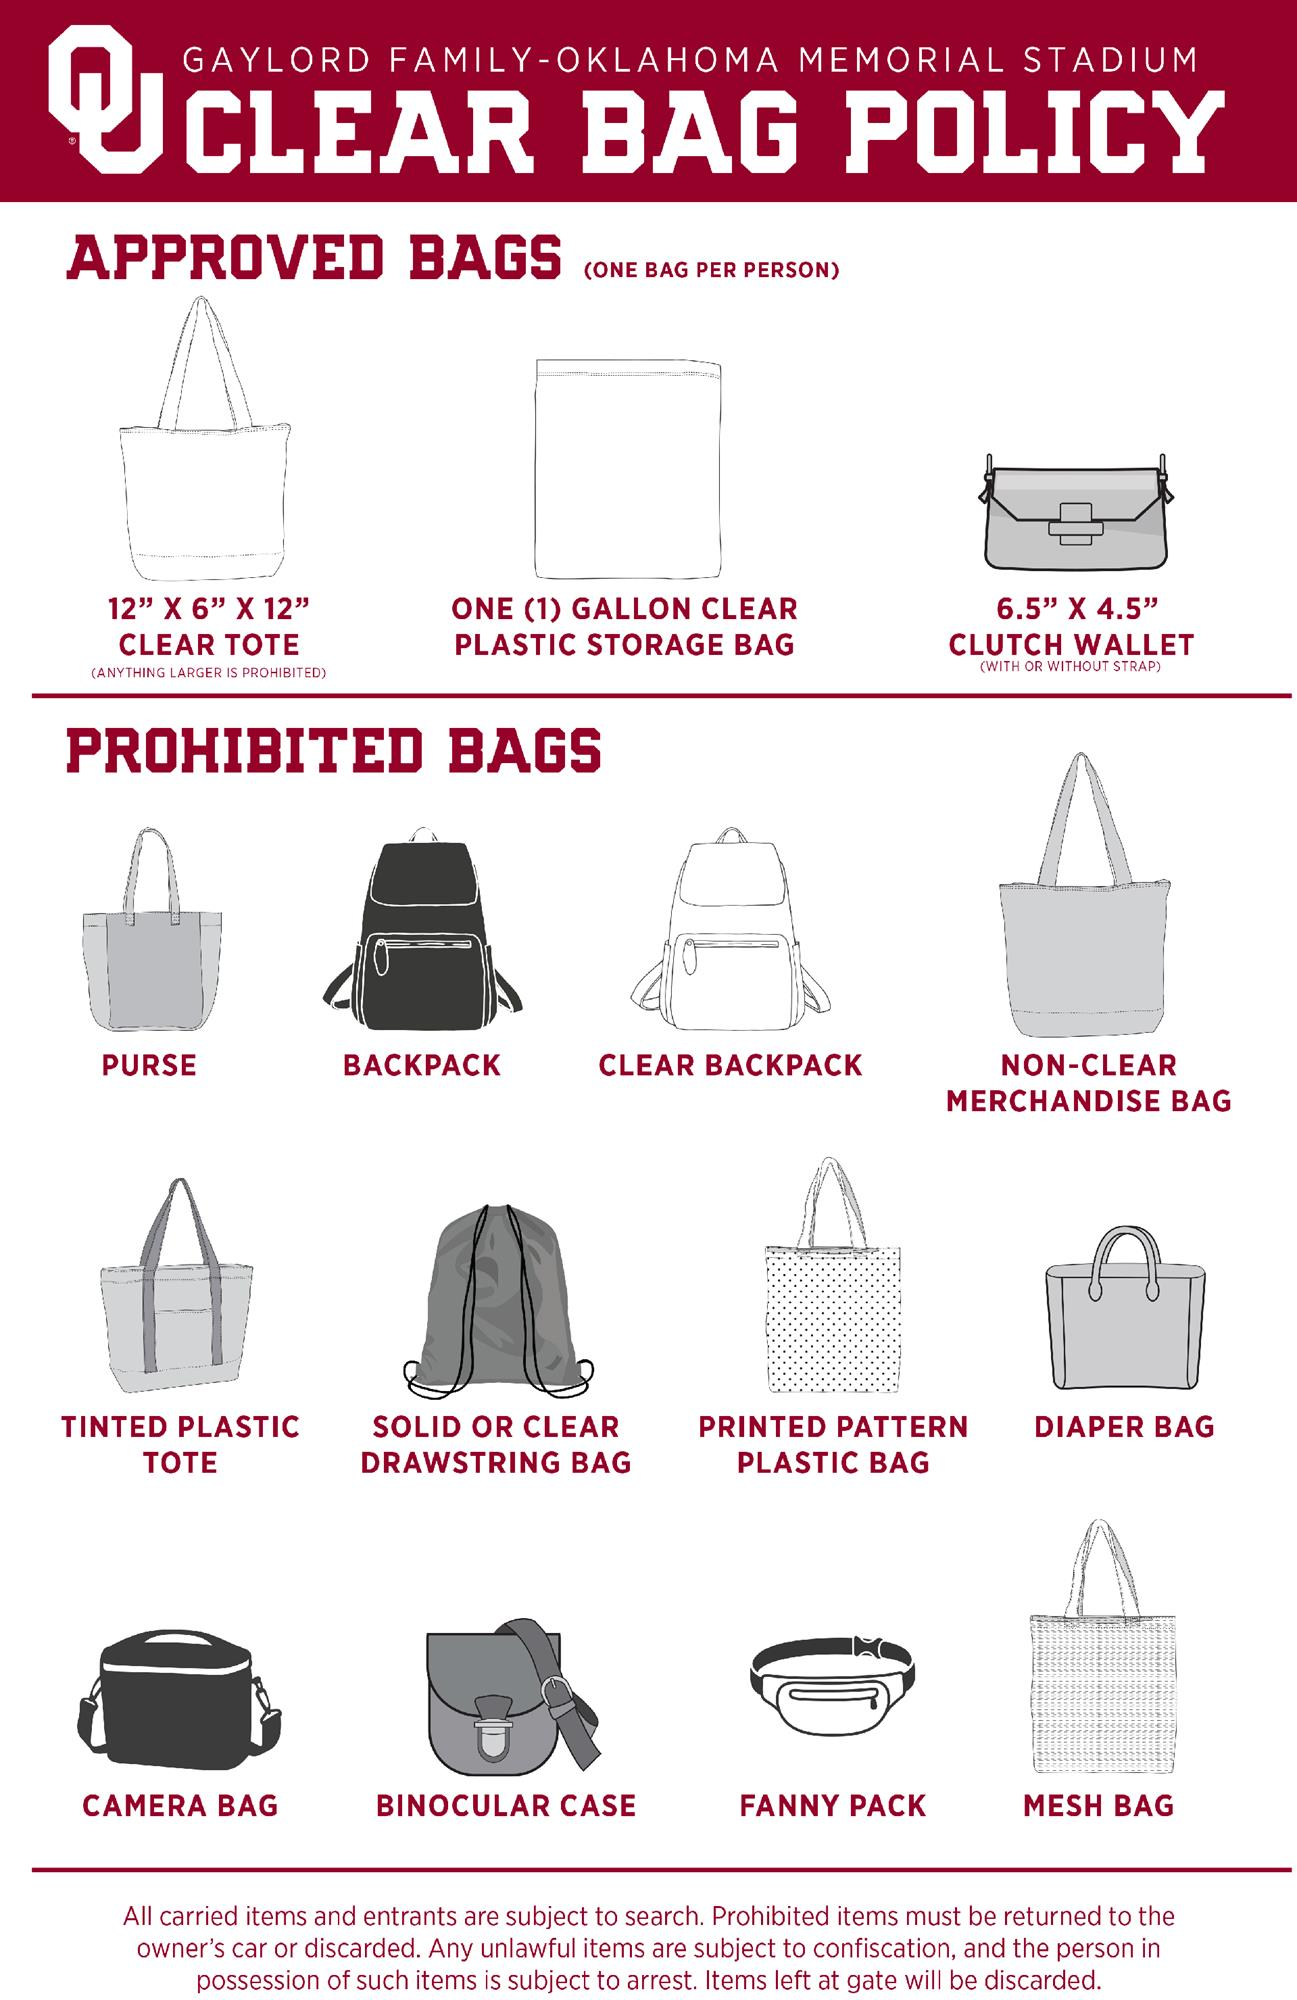 20fb clear bag policy - 2020 Sport Day Insurance policies & Procedures